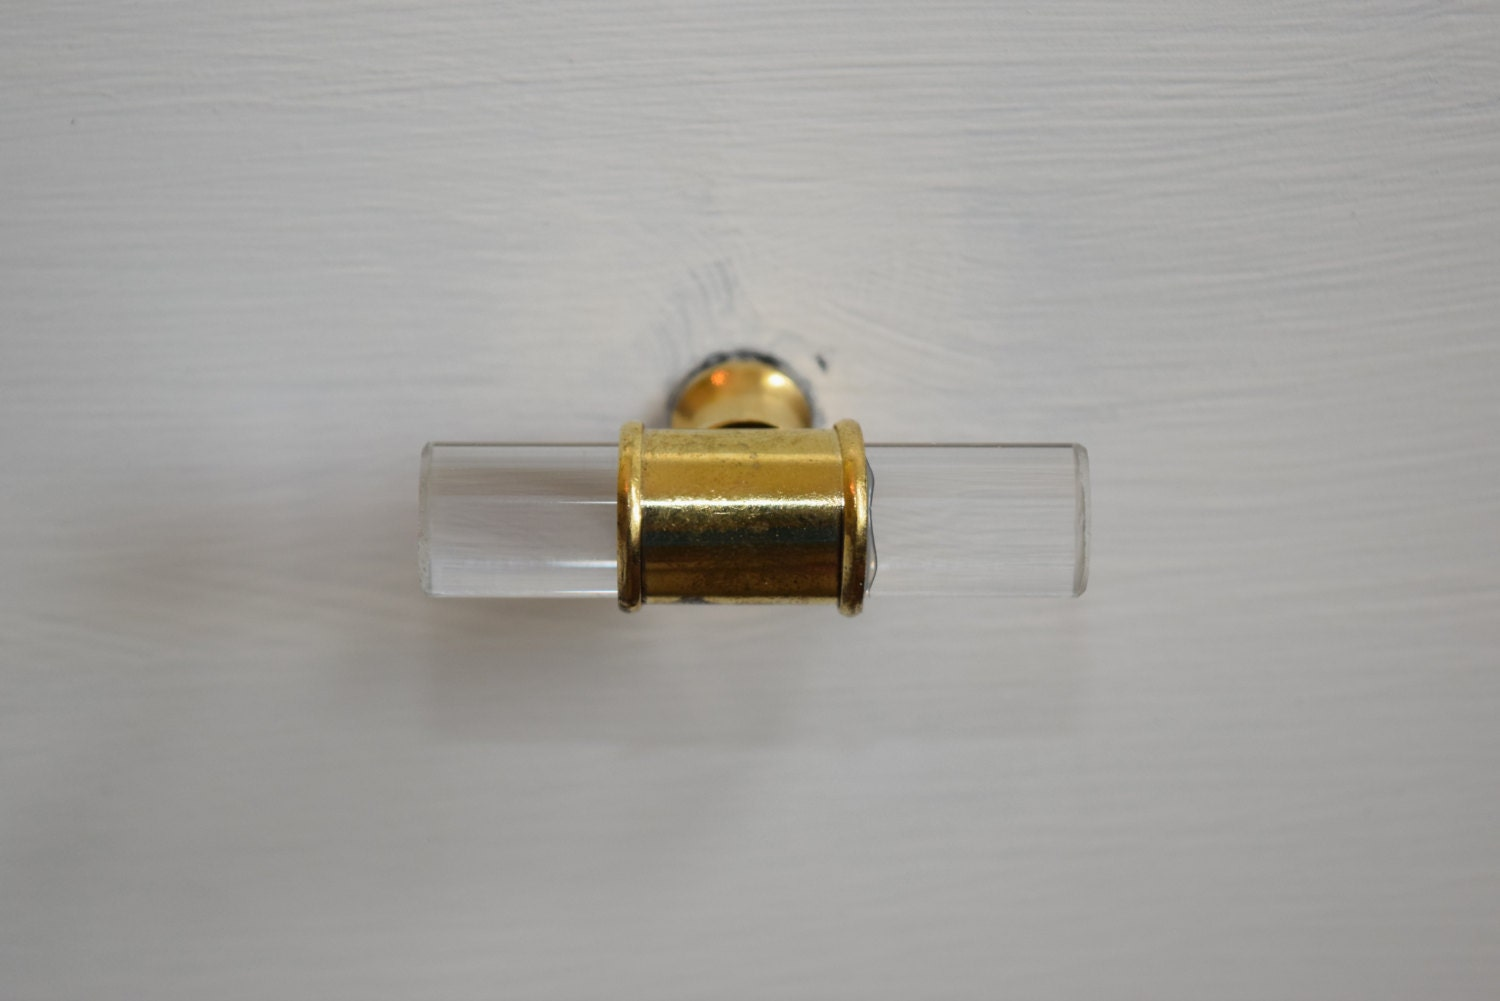 Glass Drawer Knob Handles With Brass Gold Hardware, Set Of 6 Knobs, Drawer  Pull, Cabinet Pull, , Cabinet Knobs